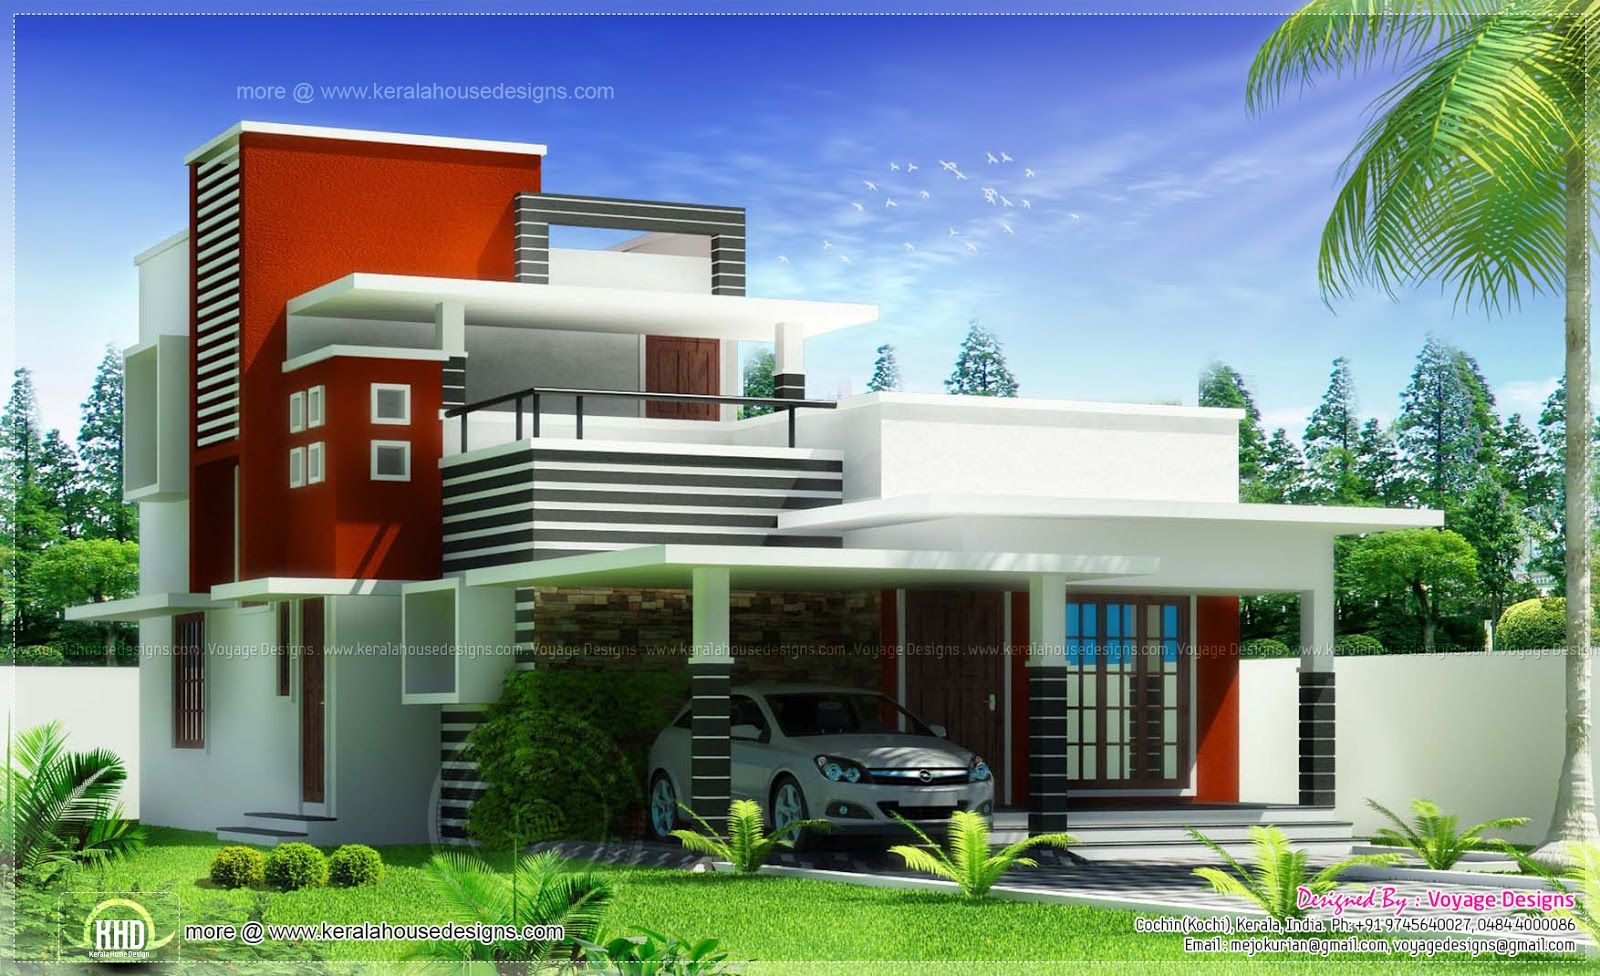 Kerala house designs architecture pinterest kerala for Kerala home designs contemporary